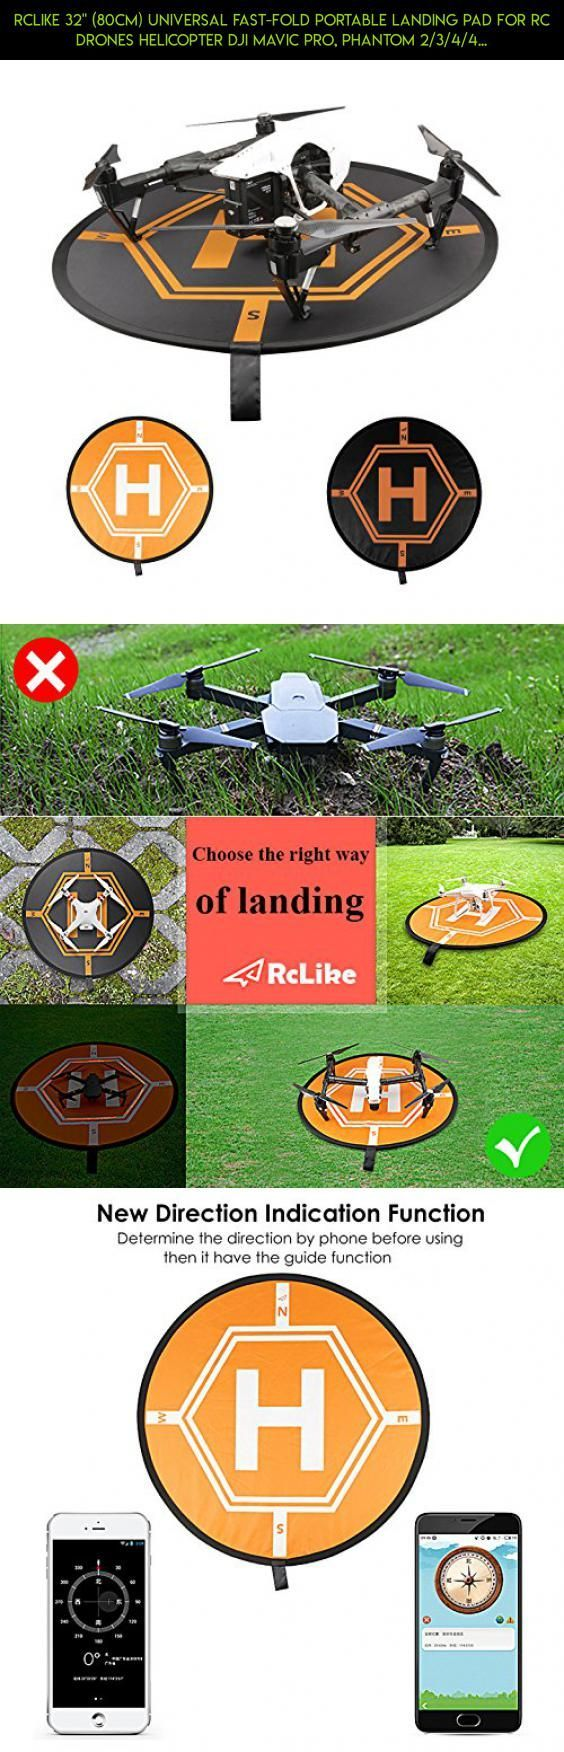 """RcLike 32"""" (80cm) Universal Fast-Fold Portable Landing Pad for RC Drones Helicopter DJI Mavic Pro, Phantom 2/3/4/4 Pro, Inspire 2/1, 3DR Solo, GoPro Karma, Parrot, Antel Robotic, Holy Stone, UDI #drone #3dr #kit #gadgets #tech #fpv #parts #shopping #products #fpv #technology #goggles #plans #camera #racing"""